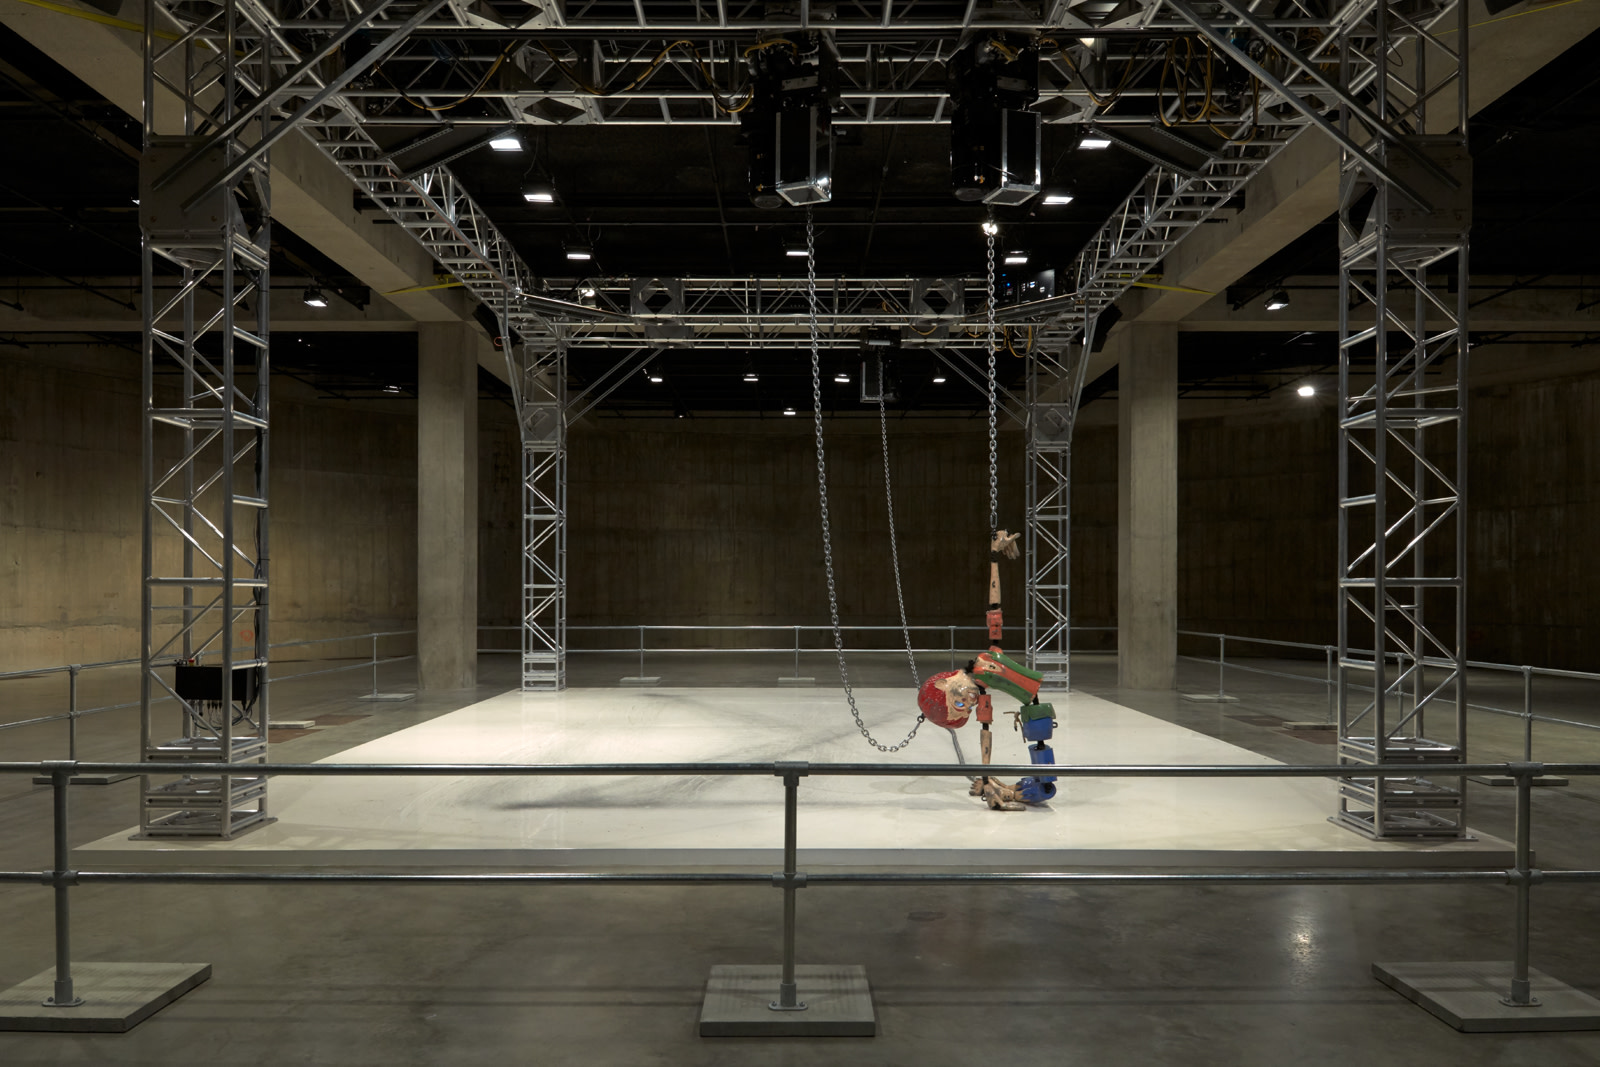 <p>Colored<em>sculpture</em>, 2016, installation view, The Tanks, Tate Modern, 3 May - 31 August 2018</p><p>Mixed media</p><p>Overall dimensions vary with each installation</p><p>Photo: Robert Glowacki</p>